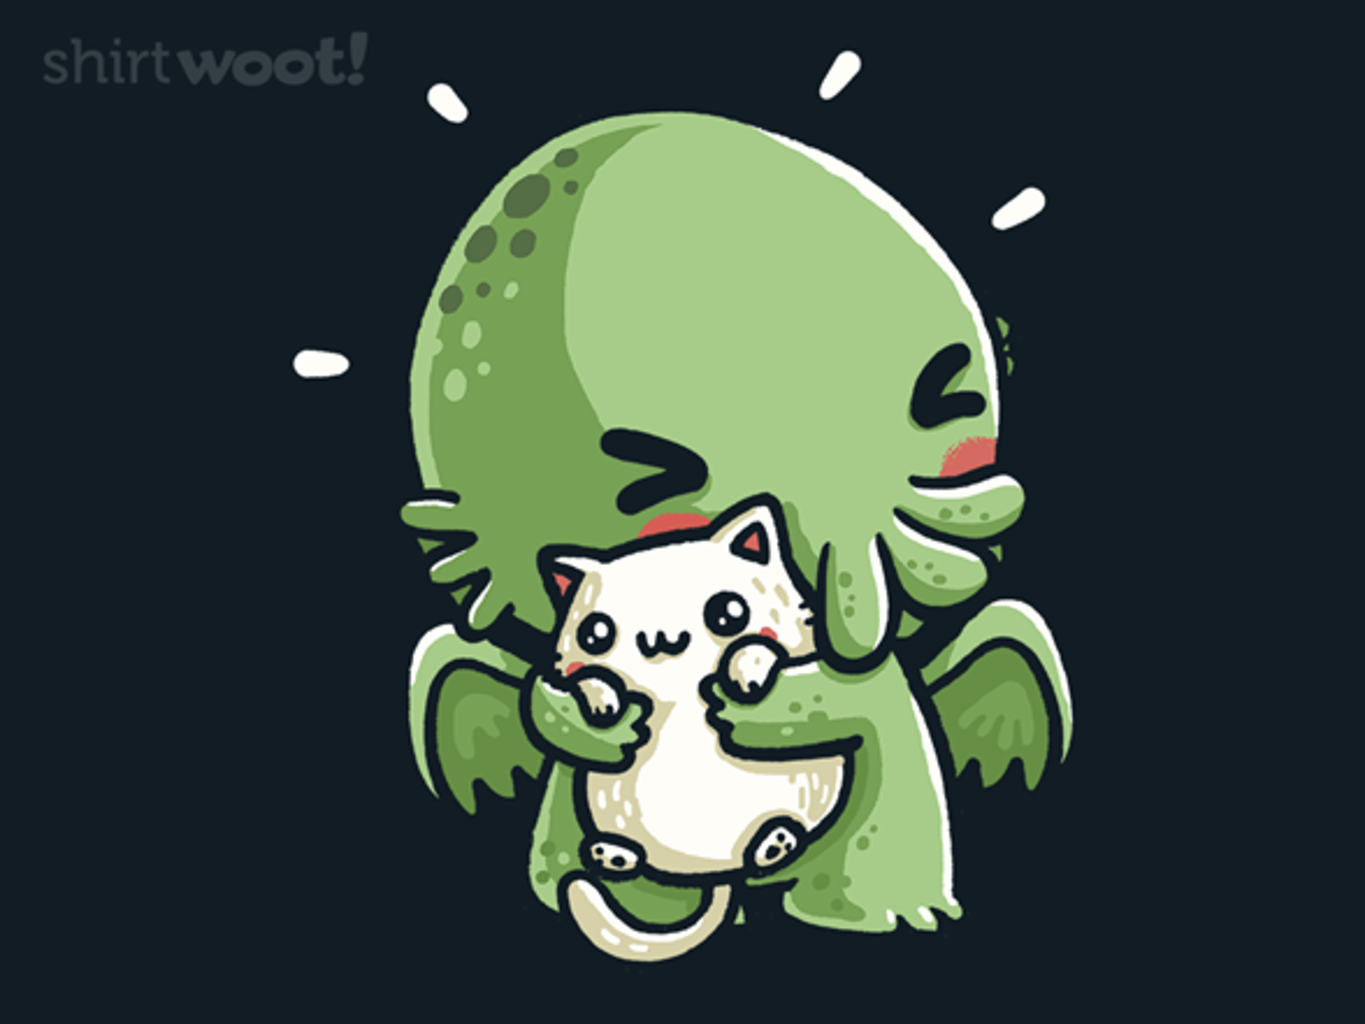 Woot!: The Cat of Cthulhu